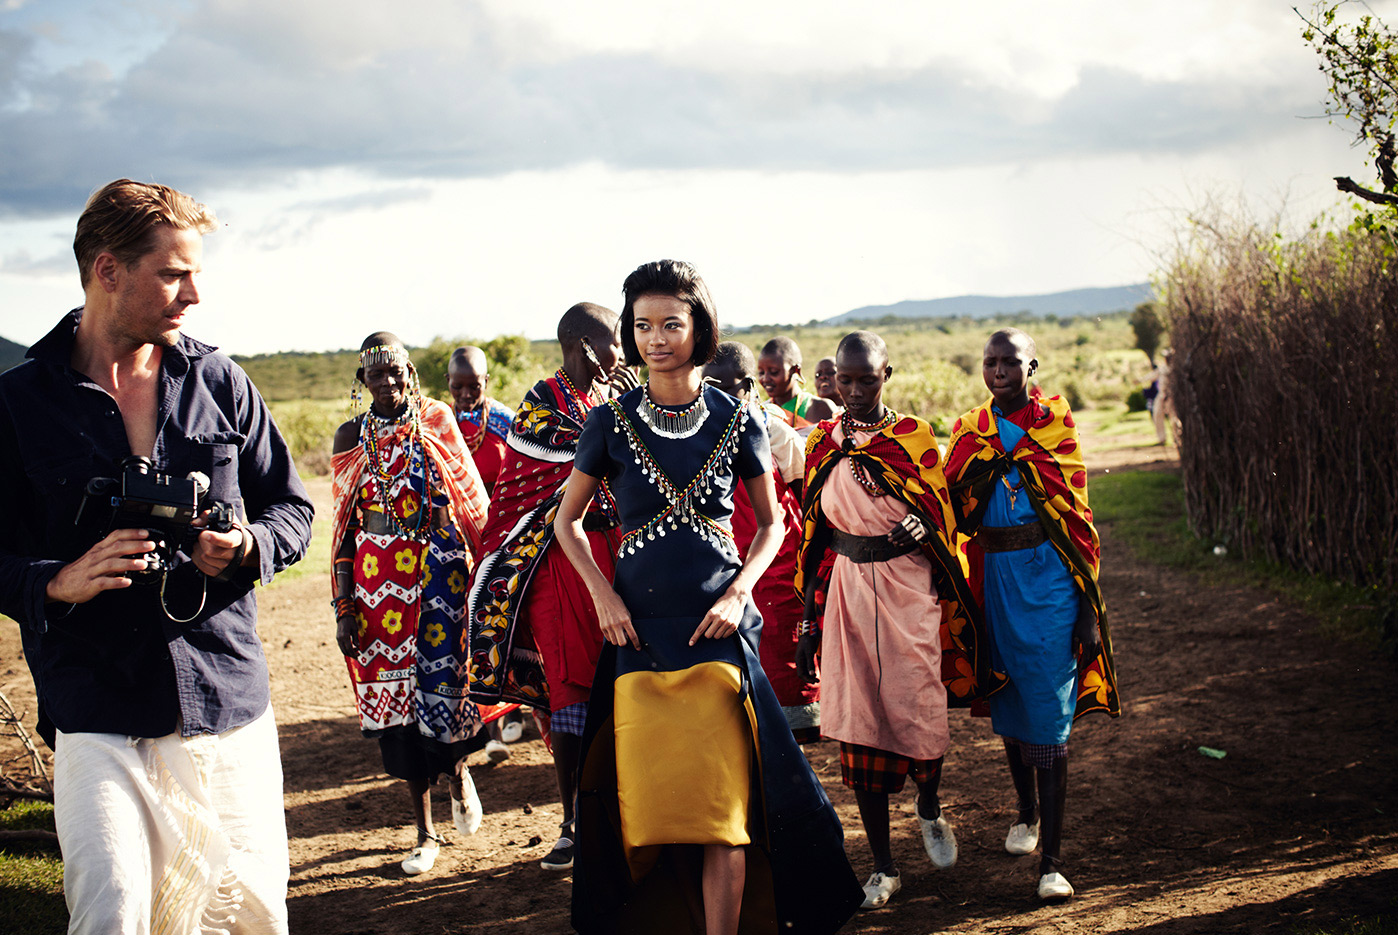 Shooting for Town & Country in Kenya.